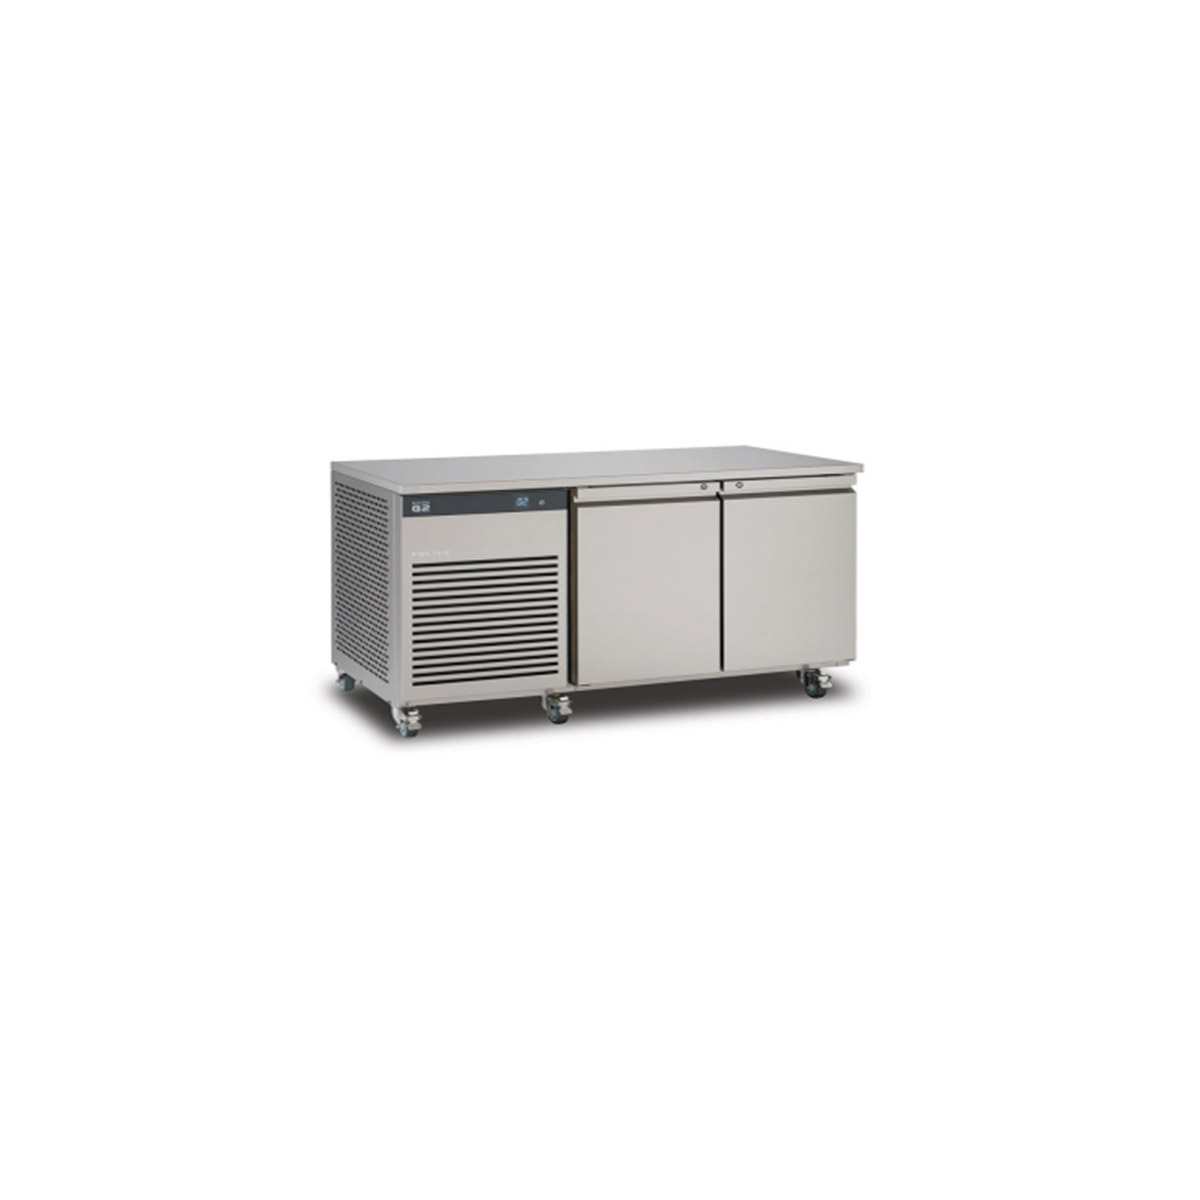 Foster EcoPro G2 EP1/2L (12-106) 280 Ltr Stainless Steel Freezer Counter